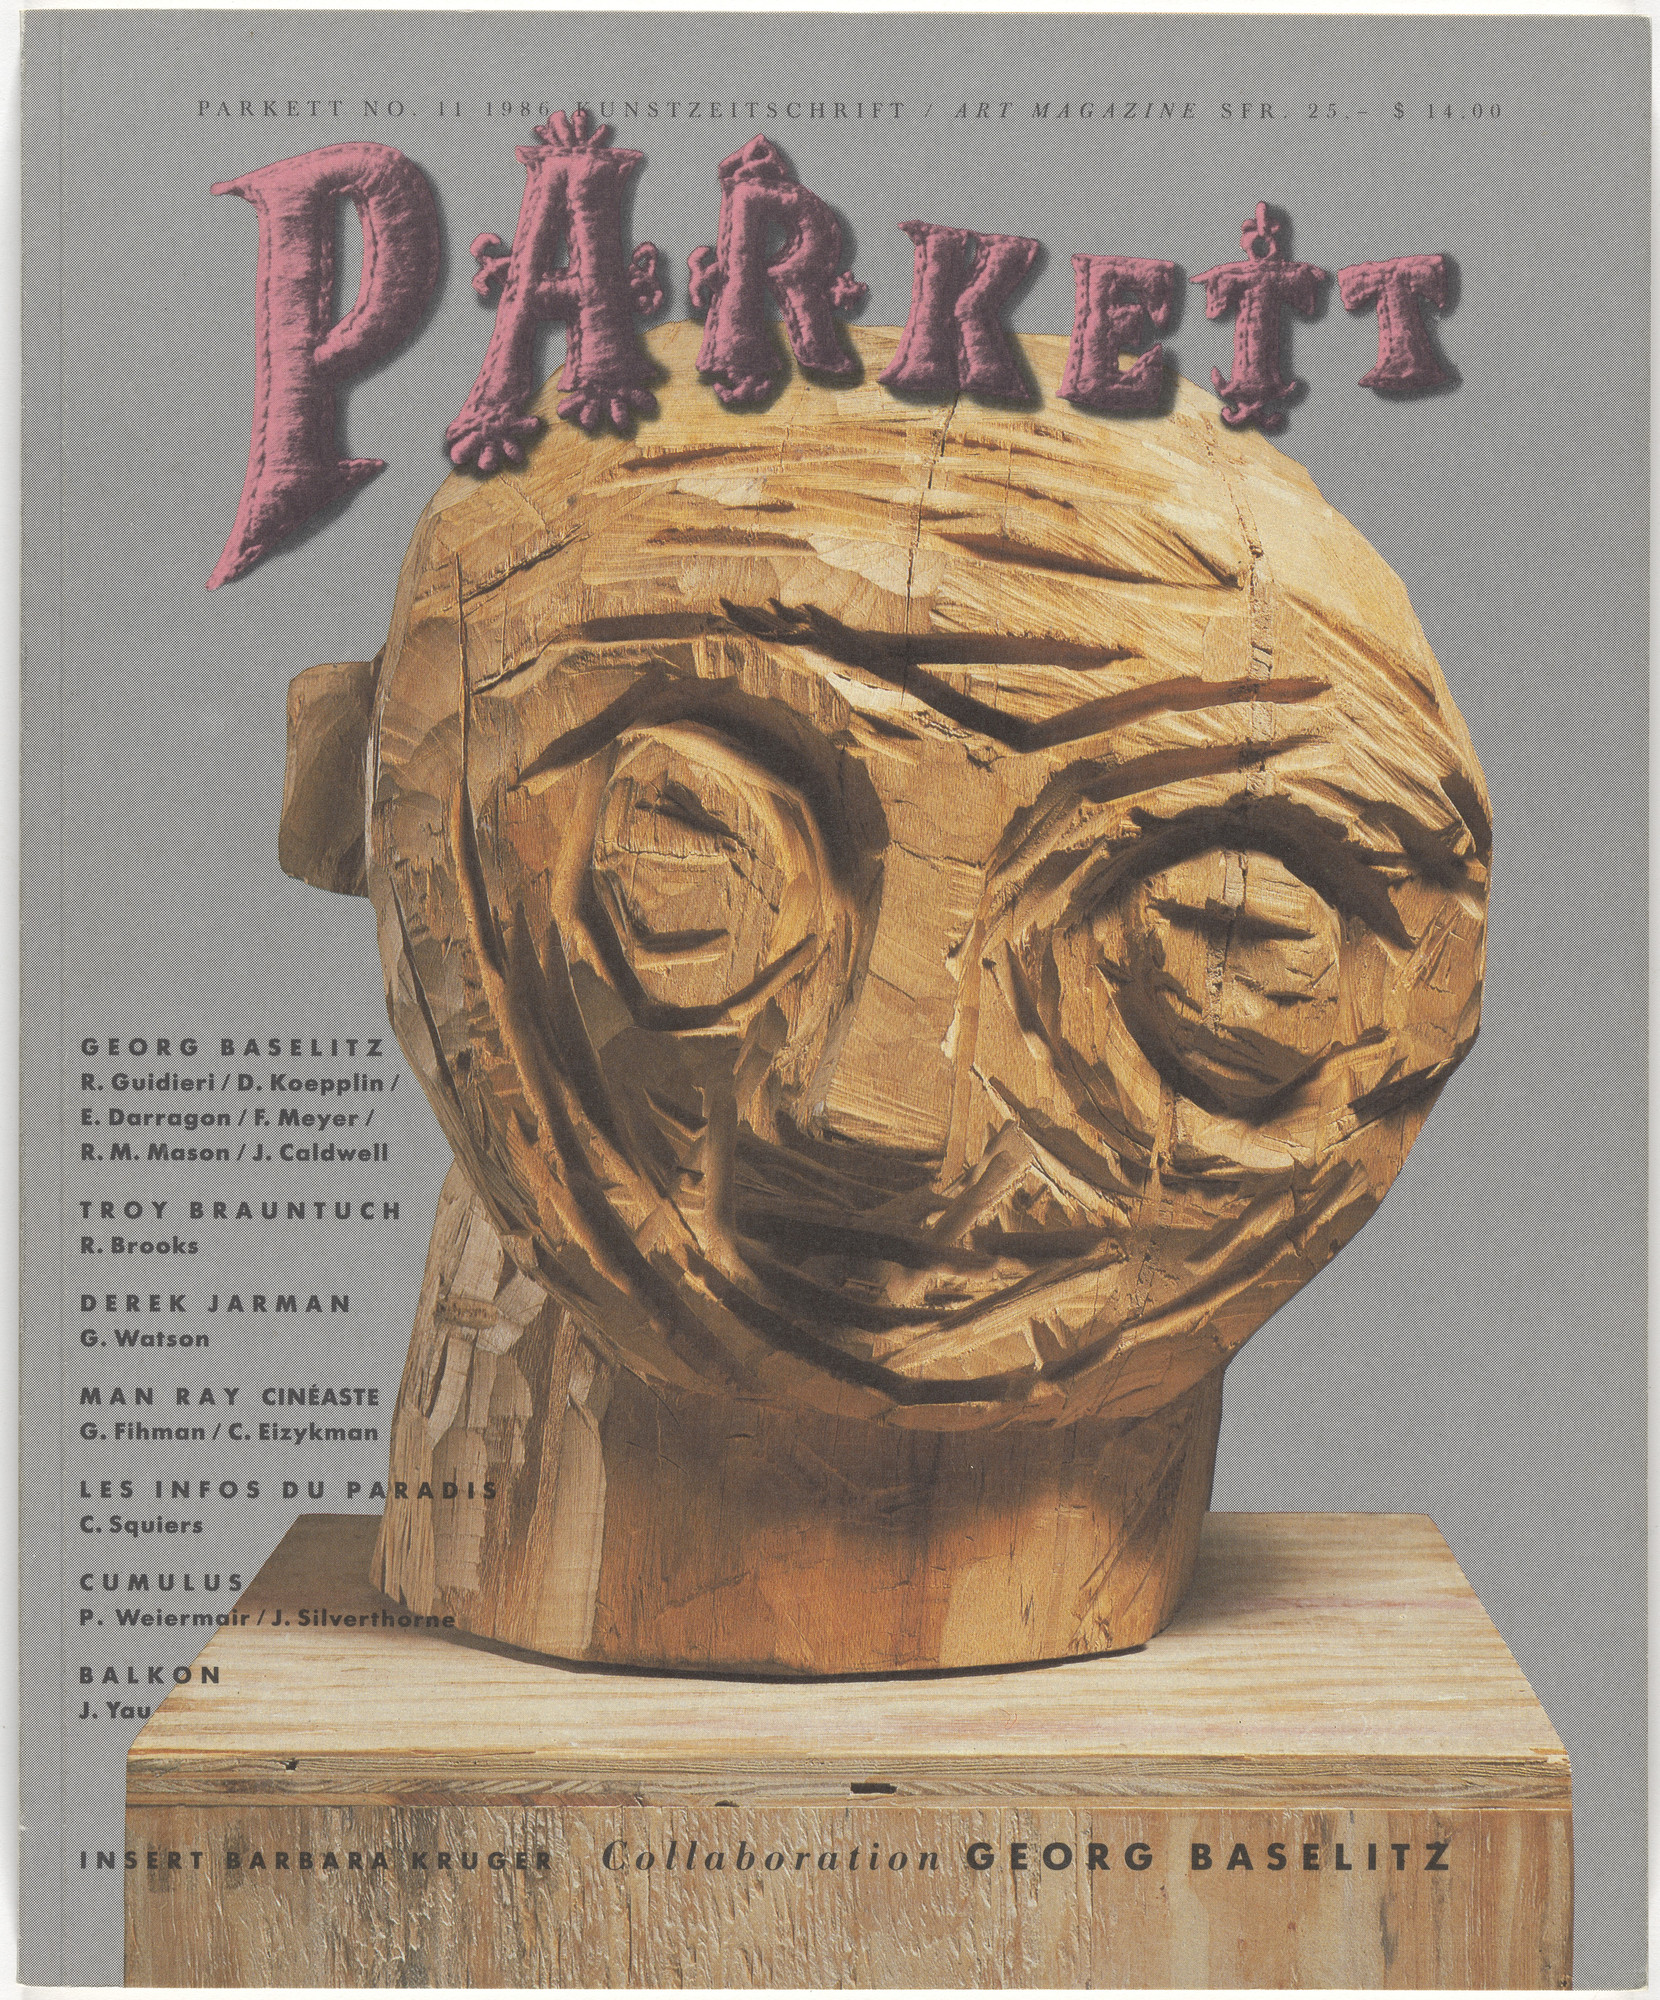 Various Artists, Georg Baselitz, Barbara Kruger. Parkett no. 11. 1986